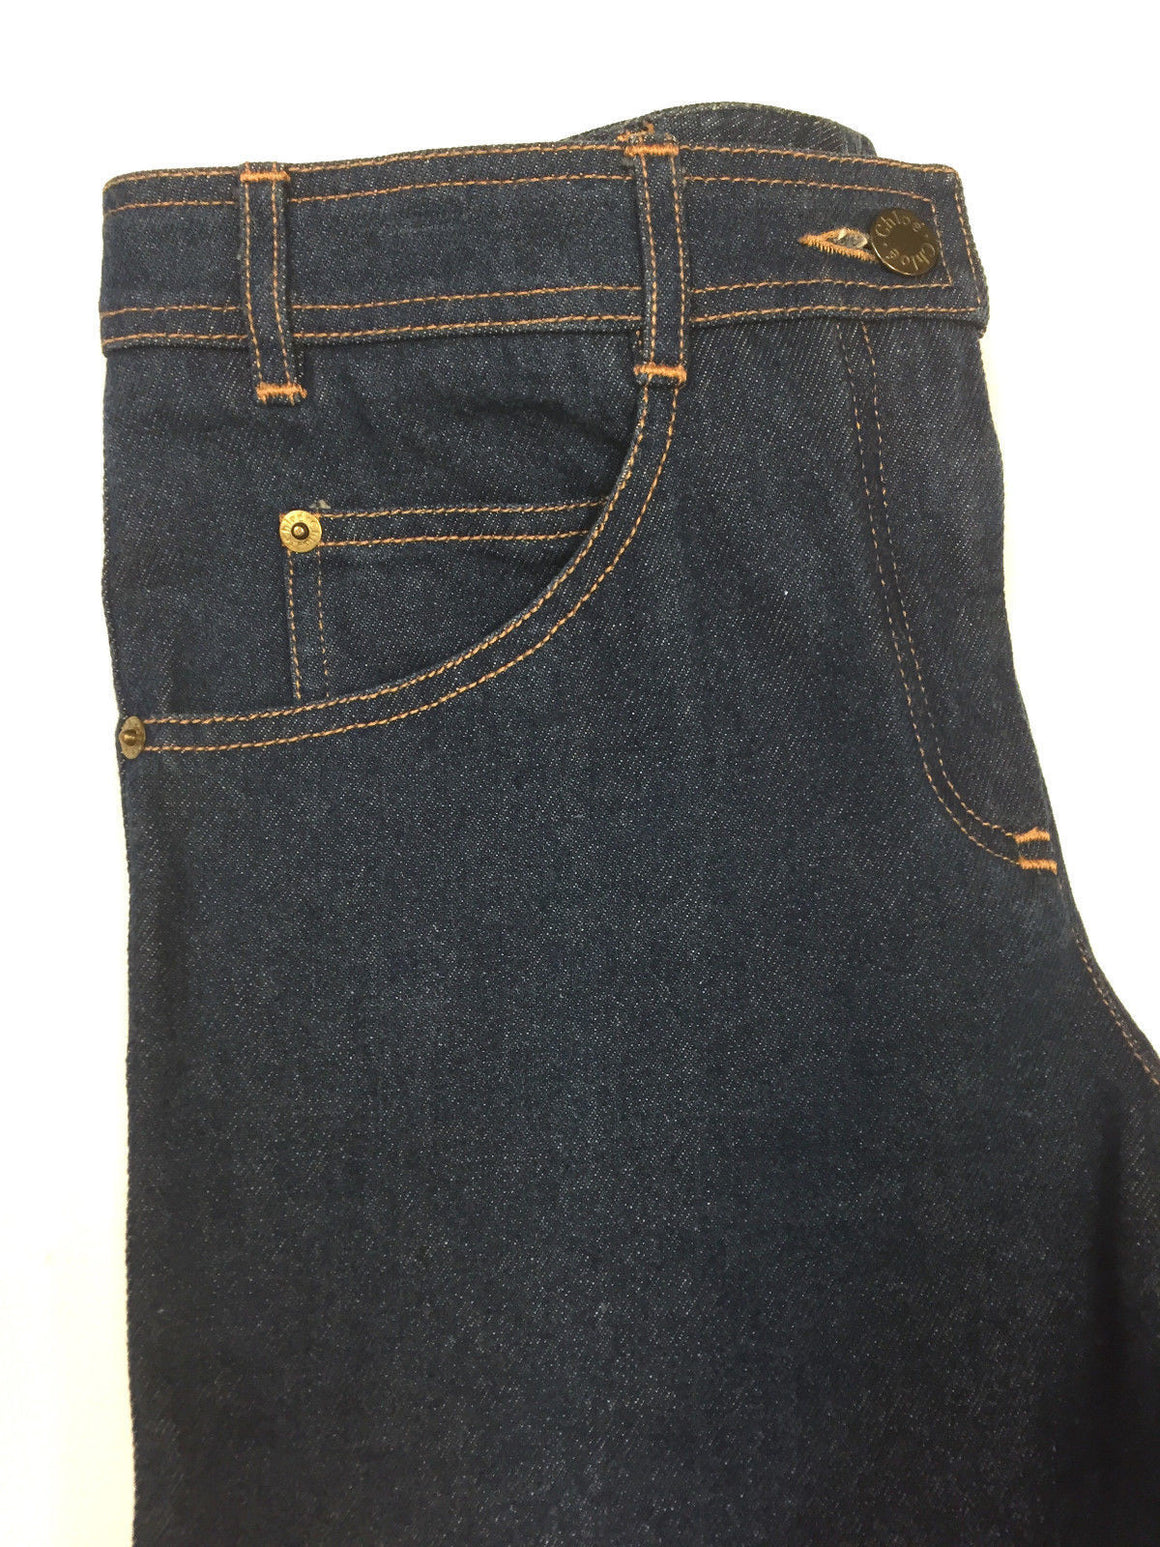 bisbiz.com CHLOE Dark-Blue Cotton Denim Mid-Rise Straight-Wide Leg Jeans Size: 38 France /US 6 - Bis Luxury Resale